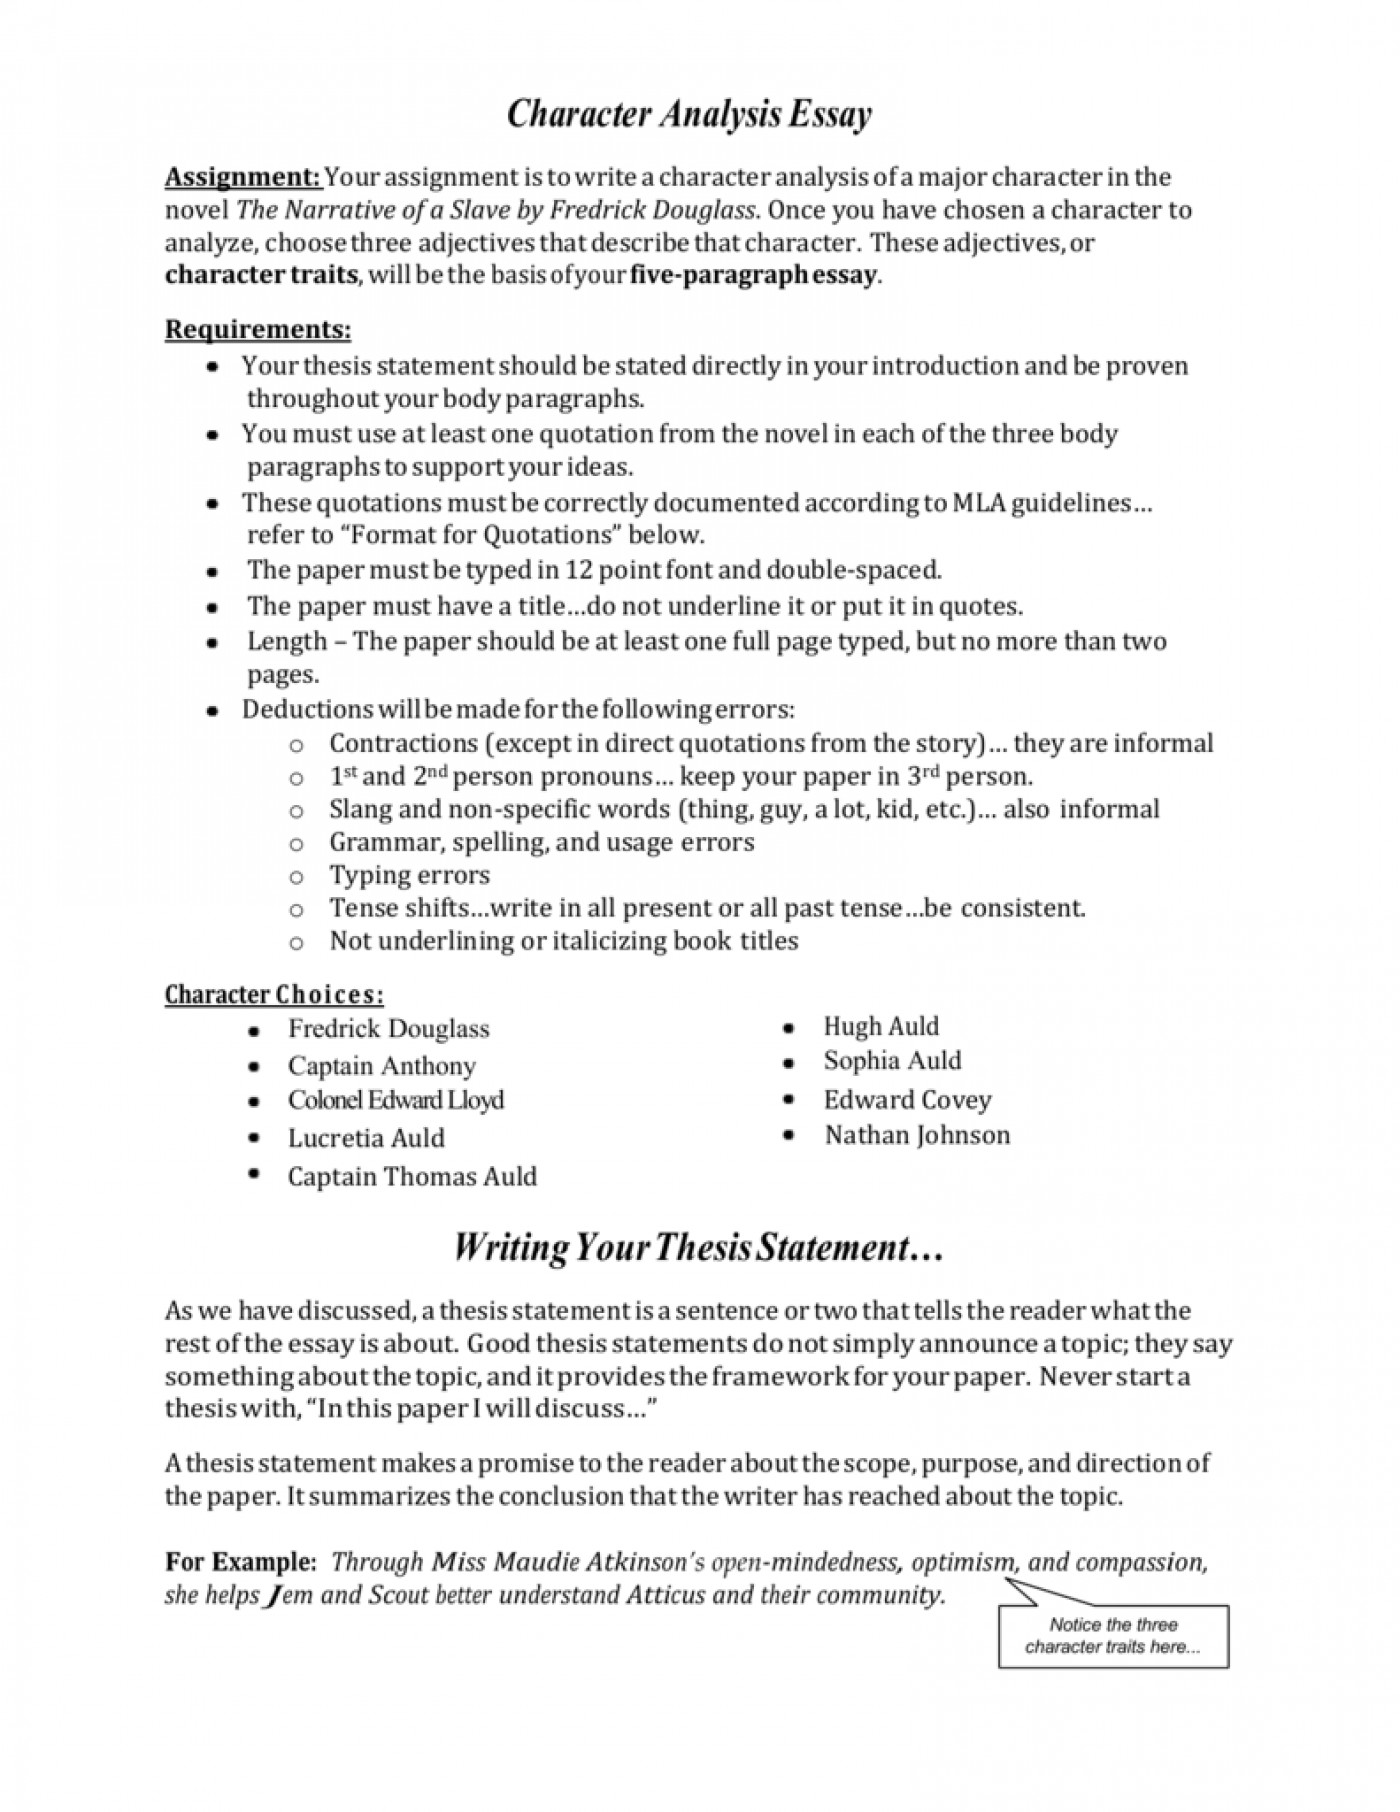 002 Character Essay 009629727 1 Wondrous Prompts Rubric Writing 1400